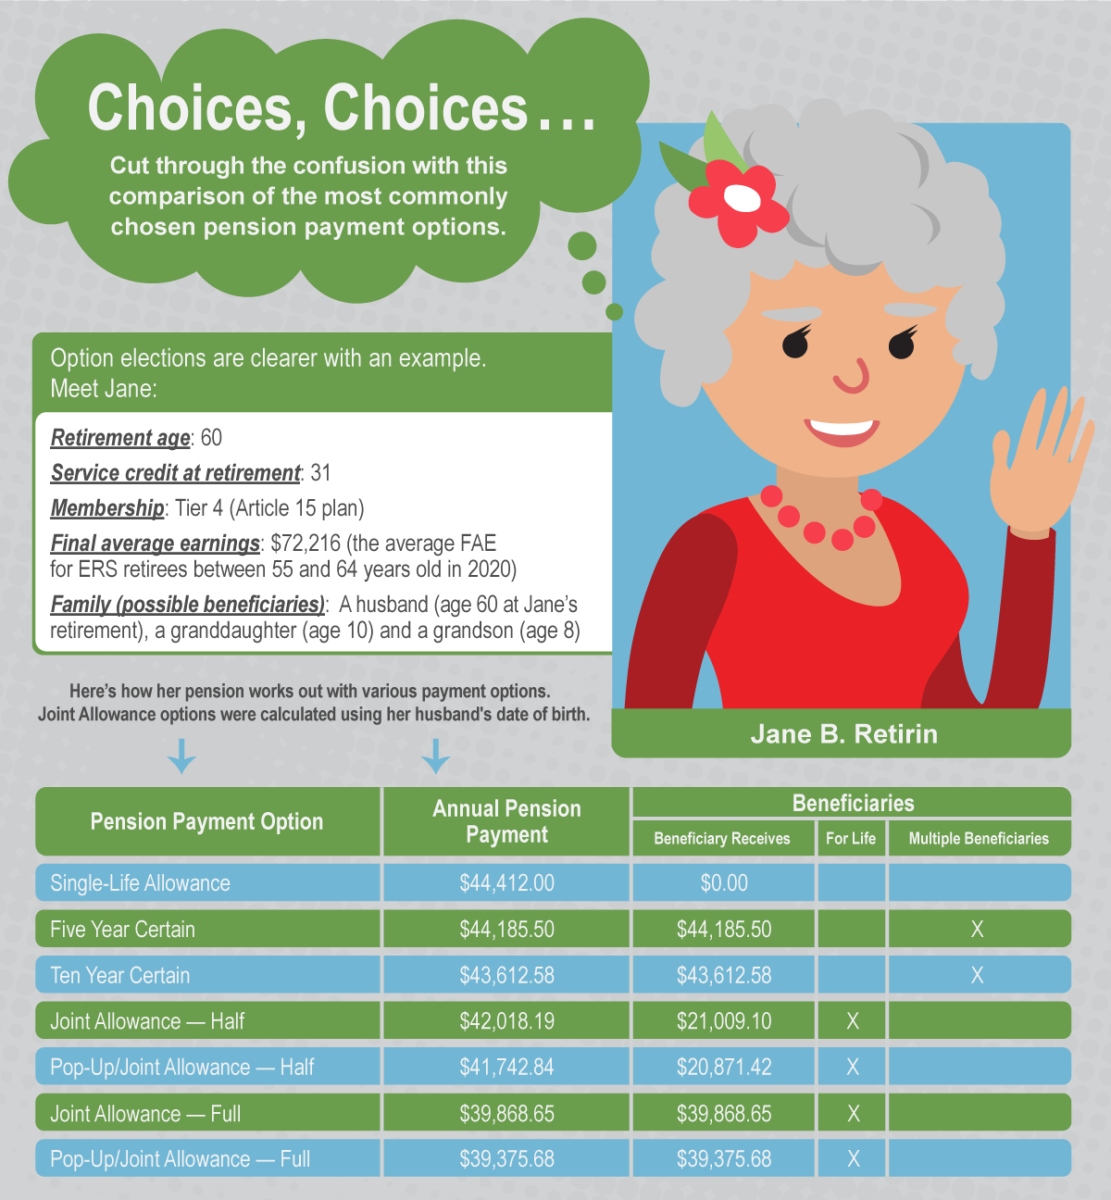 Pension Payment Option Example